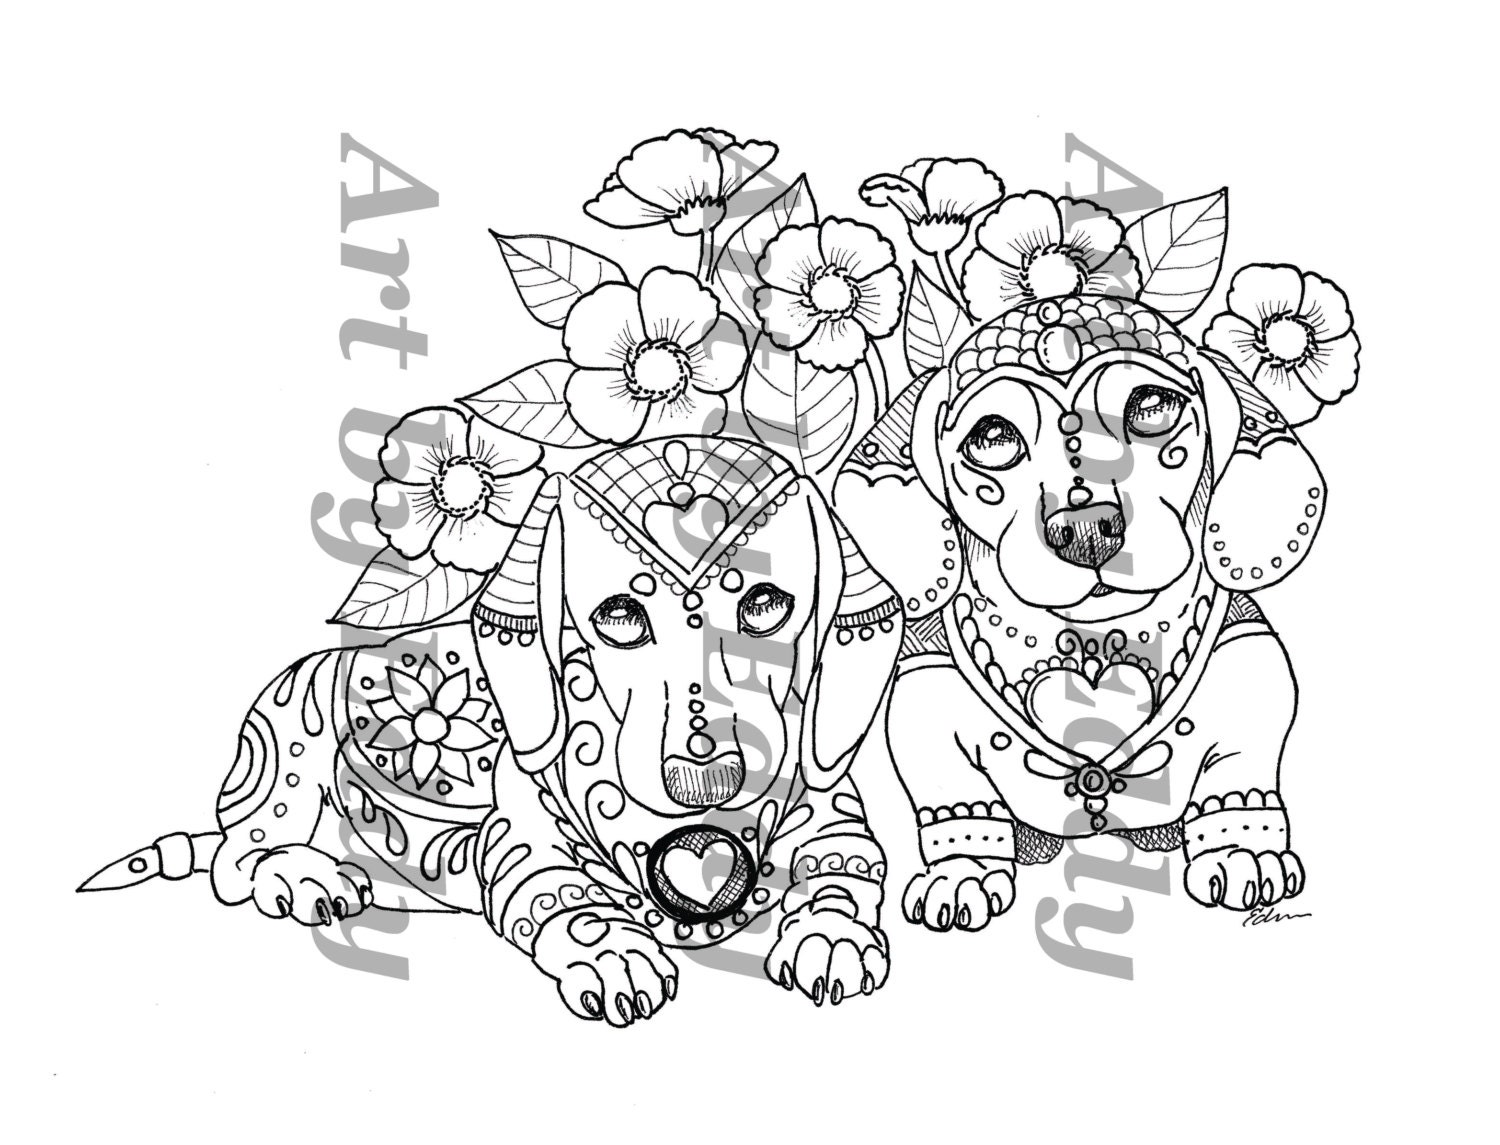 art of dachshund single coloring page siblings